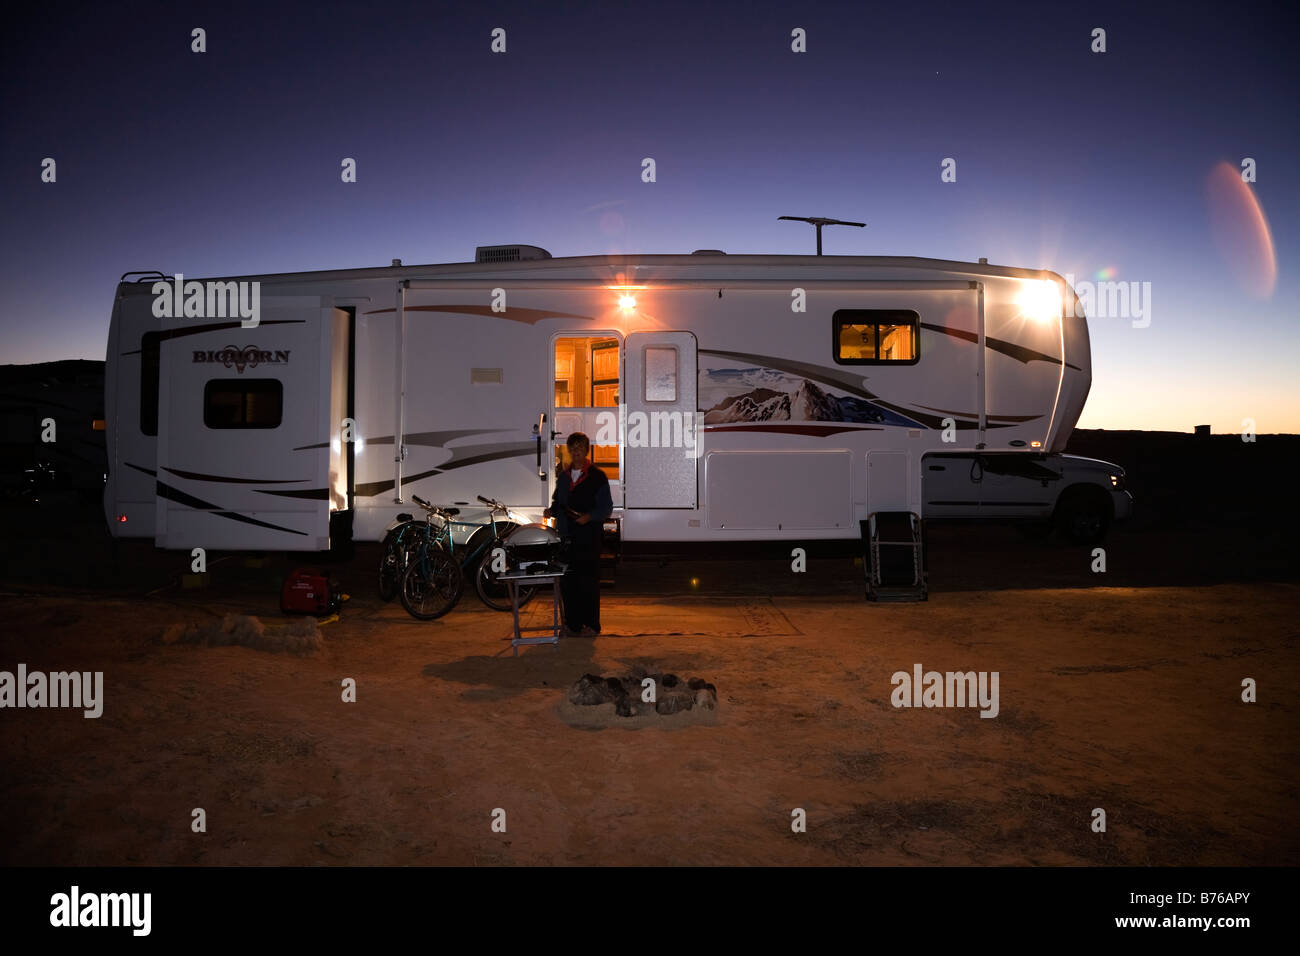 Woman cooking at night on BBQ outside a Fifth Wheel recreational vehicle camped on Lone Rock Beach Primitive Campground - Stock Image